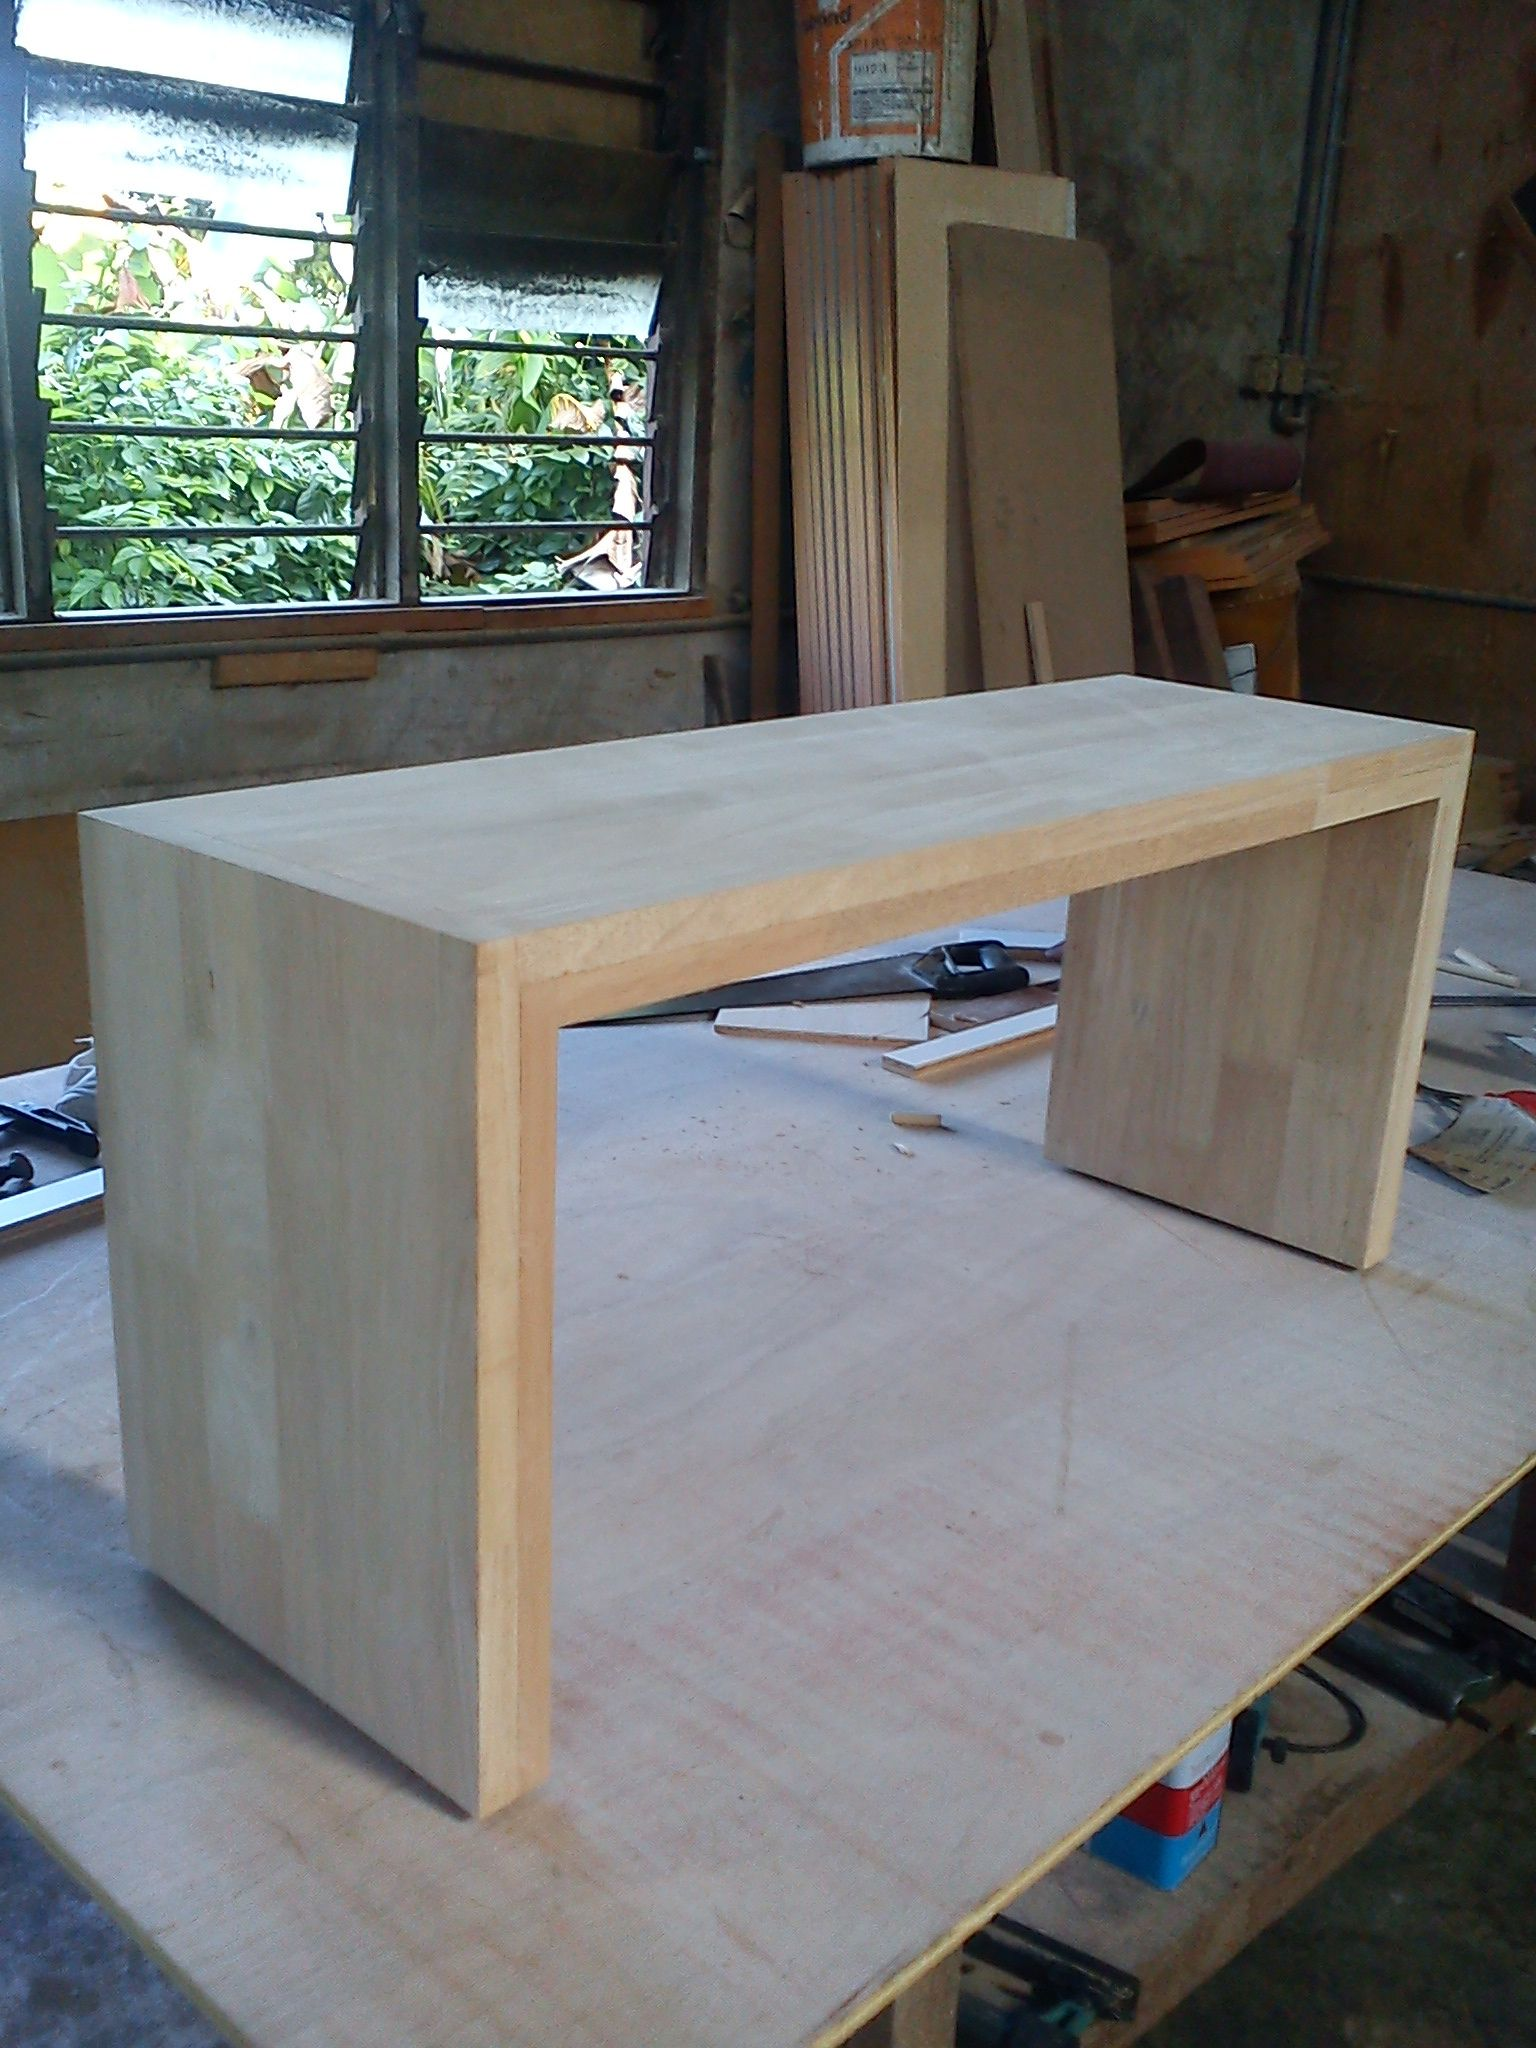 Free plans for all kinds of outdoor woodworking projects. Arbors, chairs, patio furniture, benches, gardening tables, outdoor storage and much more! AllCrafts.